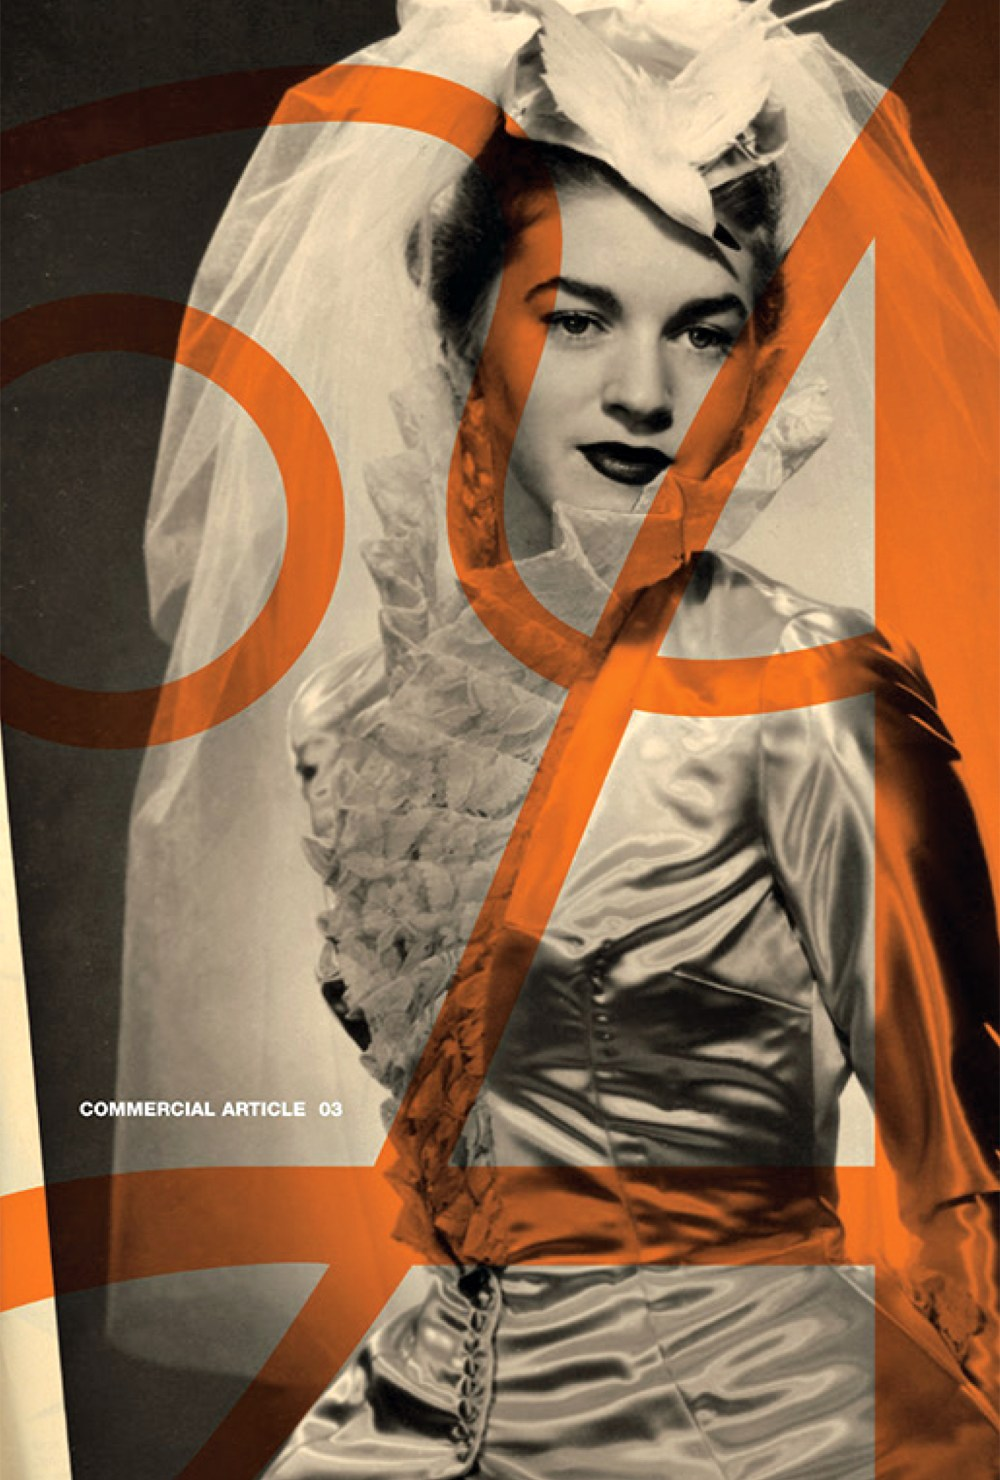 Cover of issue 3 (2010), a profile of Avriel Shull. Avriel was a pioneering Modernist home designer and self-promoting dynamo.